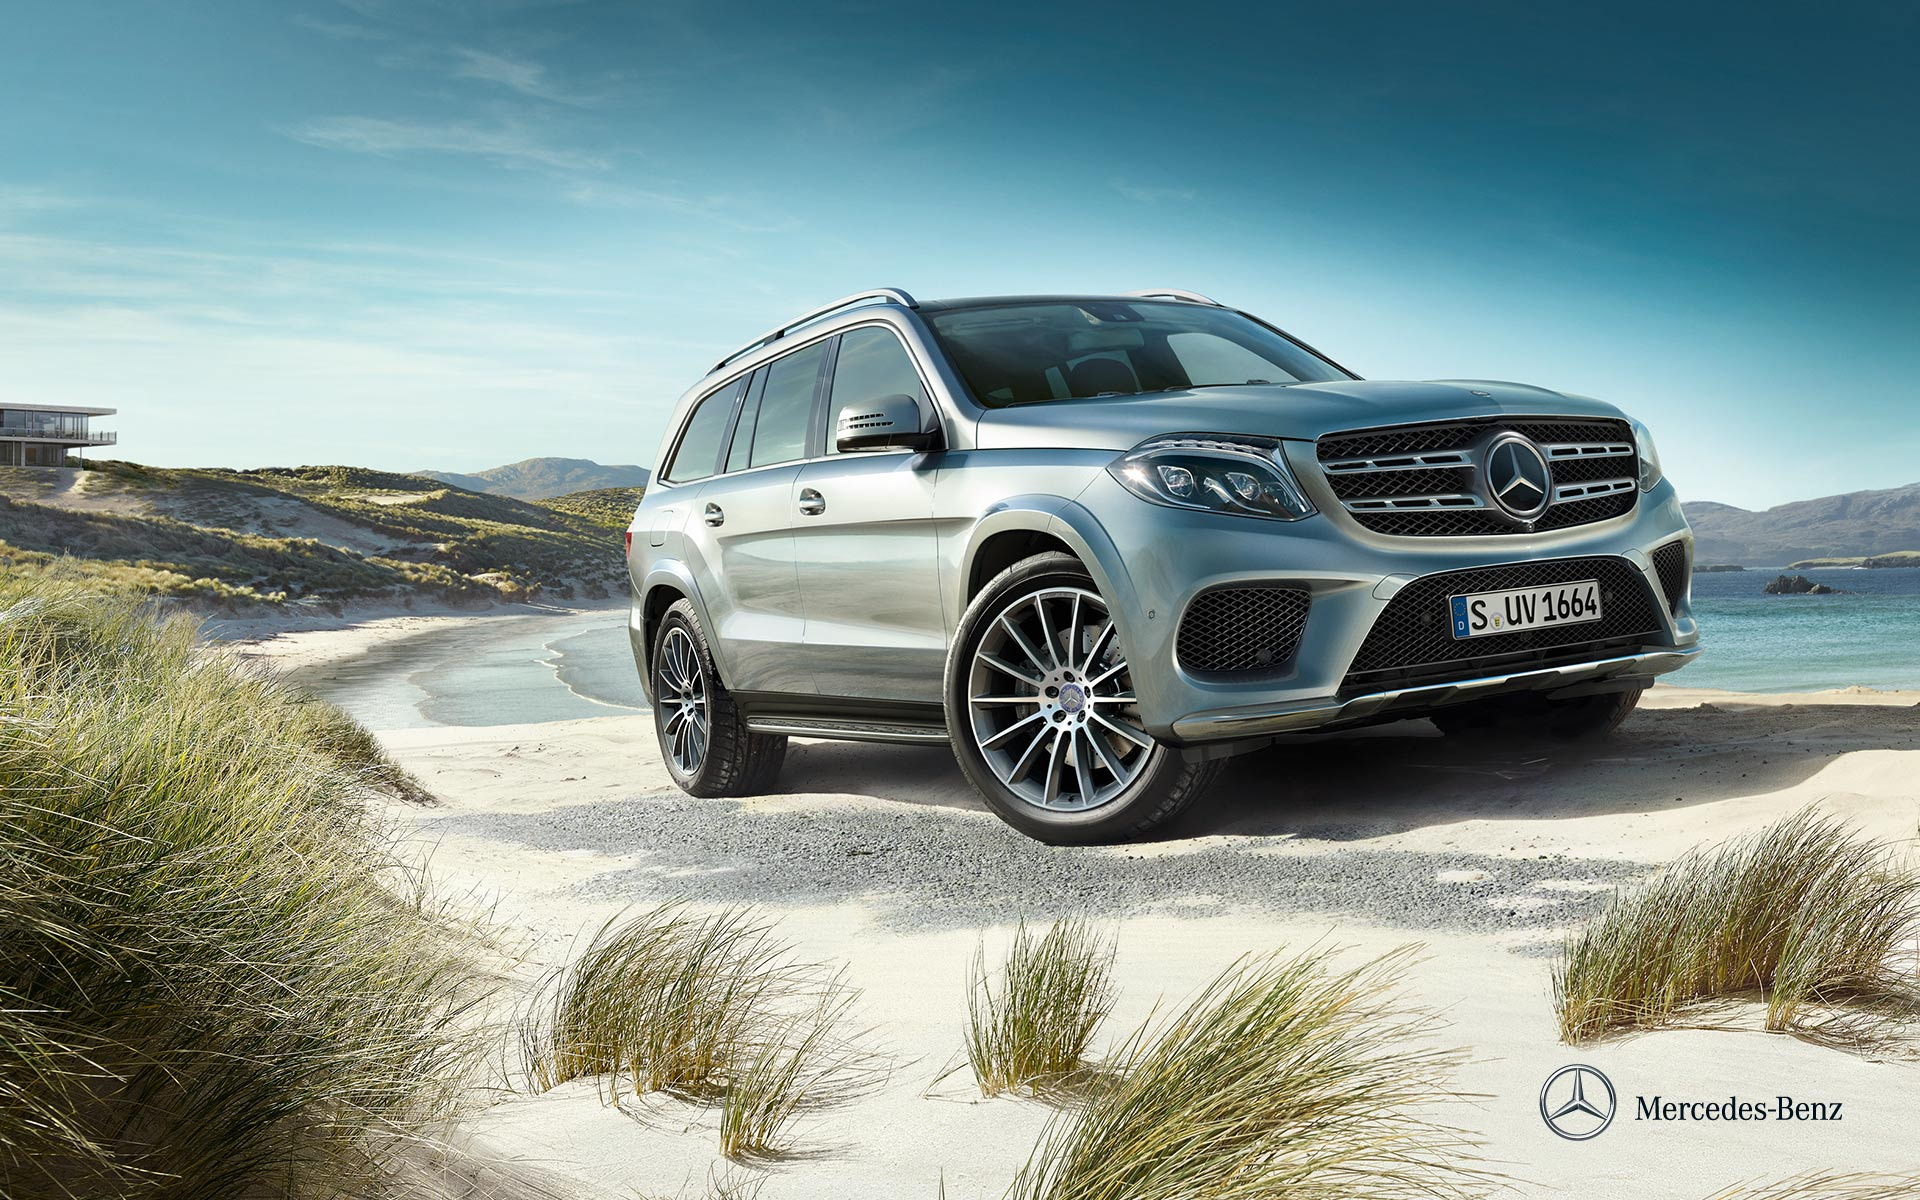 Mercedes benz gl 350 suv price in india for Mercedes benz suv india